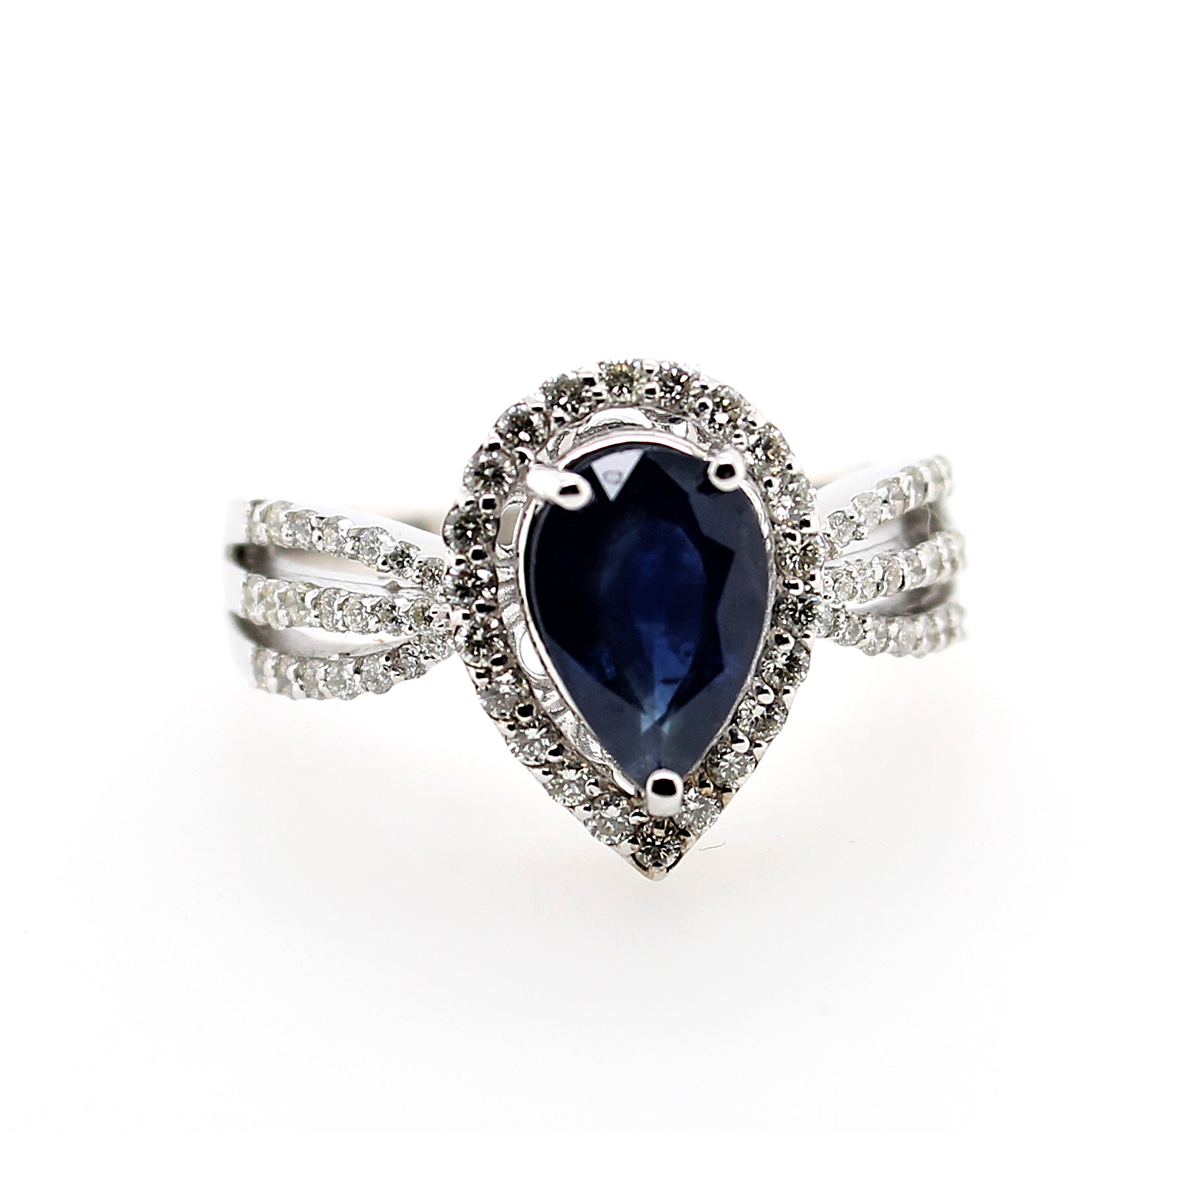 14 Karat White Gold Pear Shaped Blue Sapphire and Diamond Ring